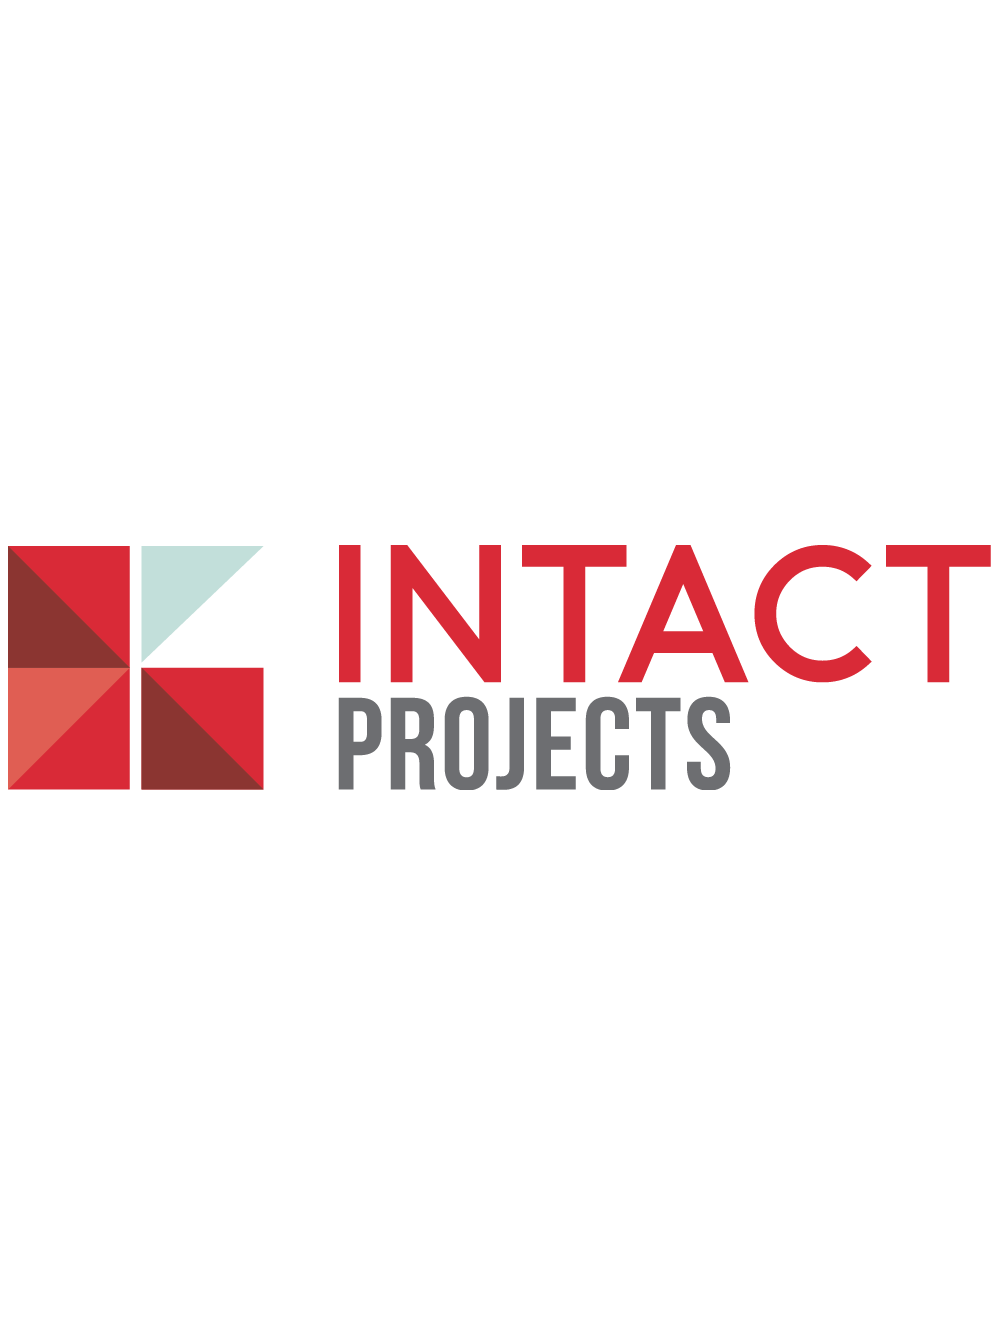 intact-projects_1000x1333.png